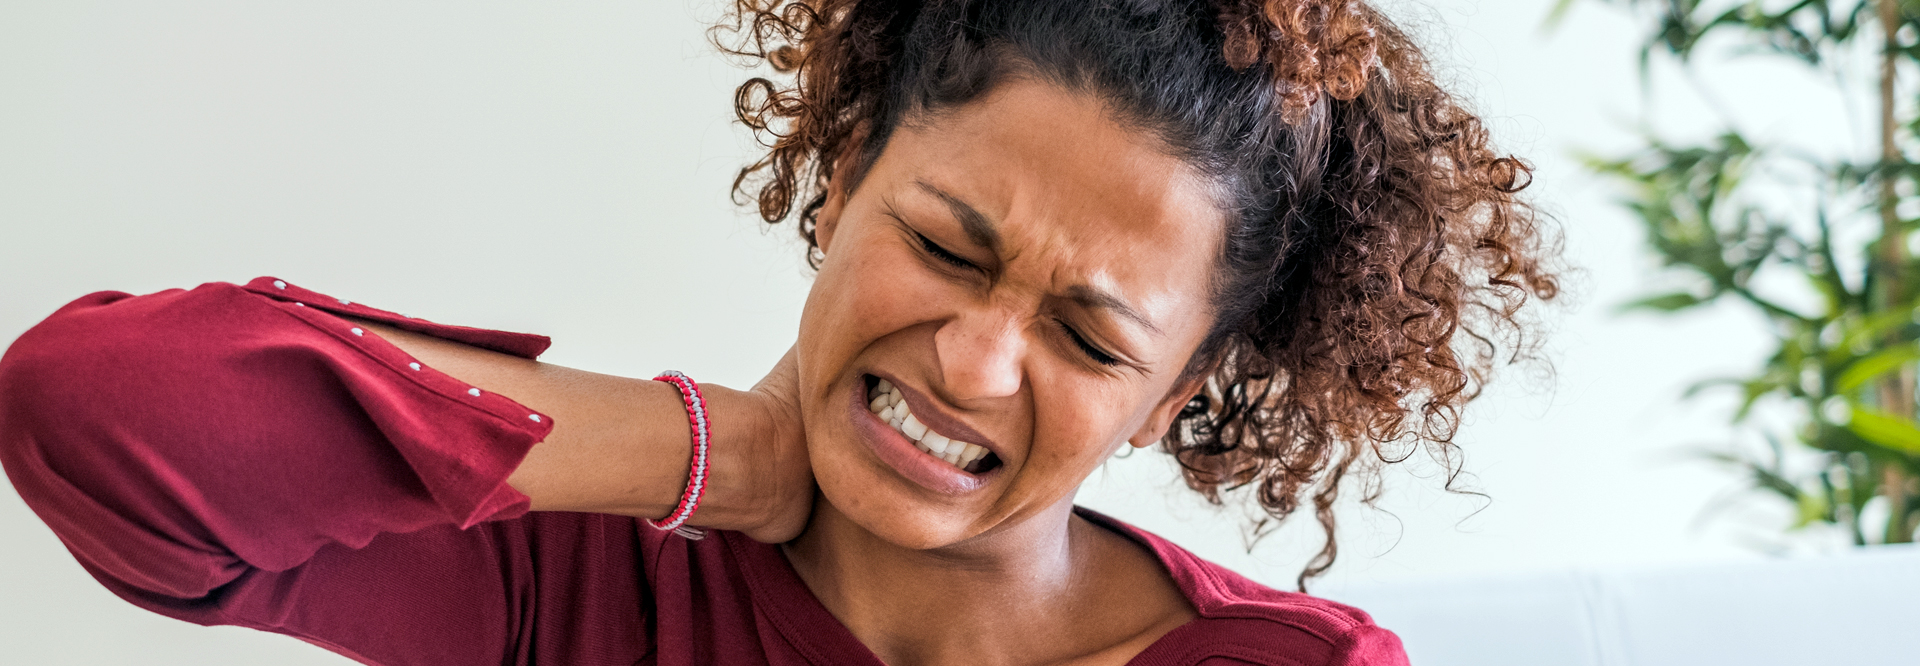 image of women with hurt neck needing relief factors